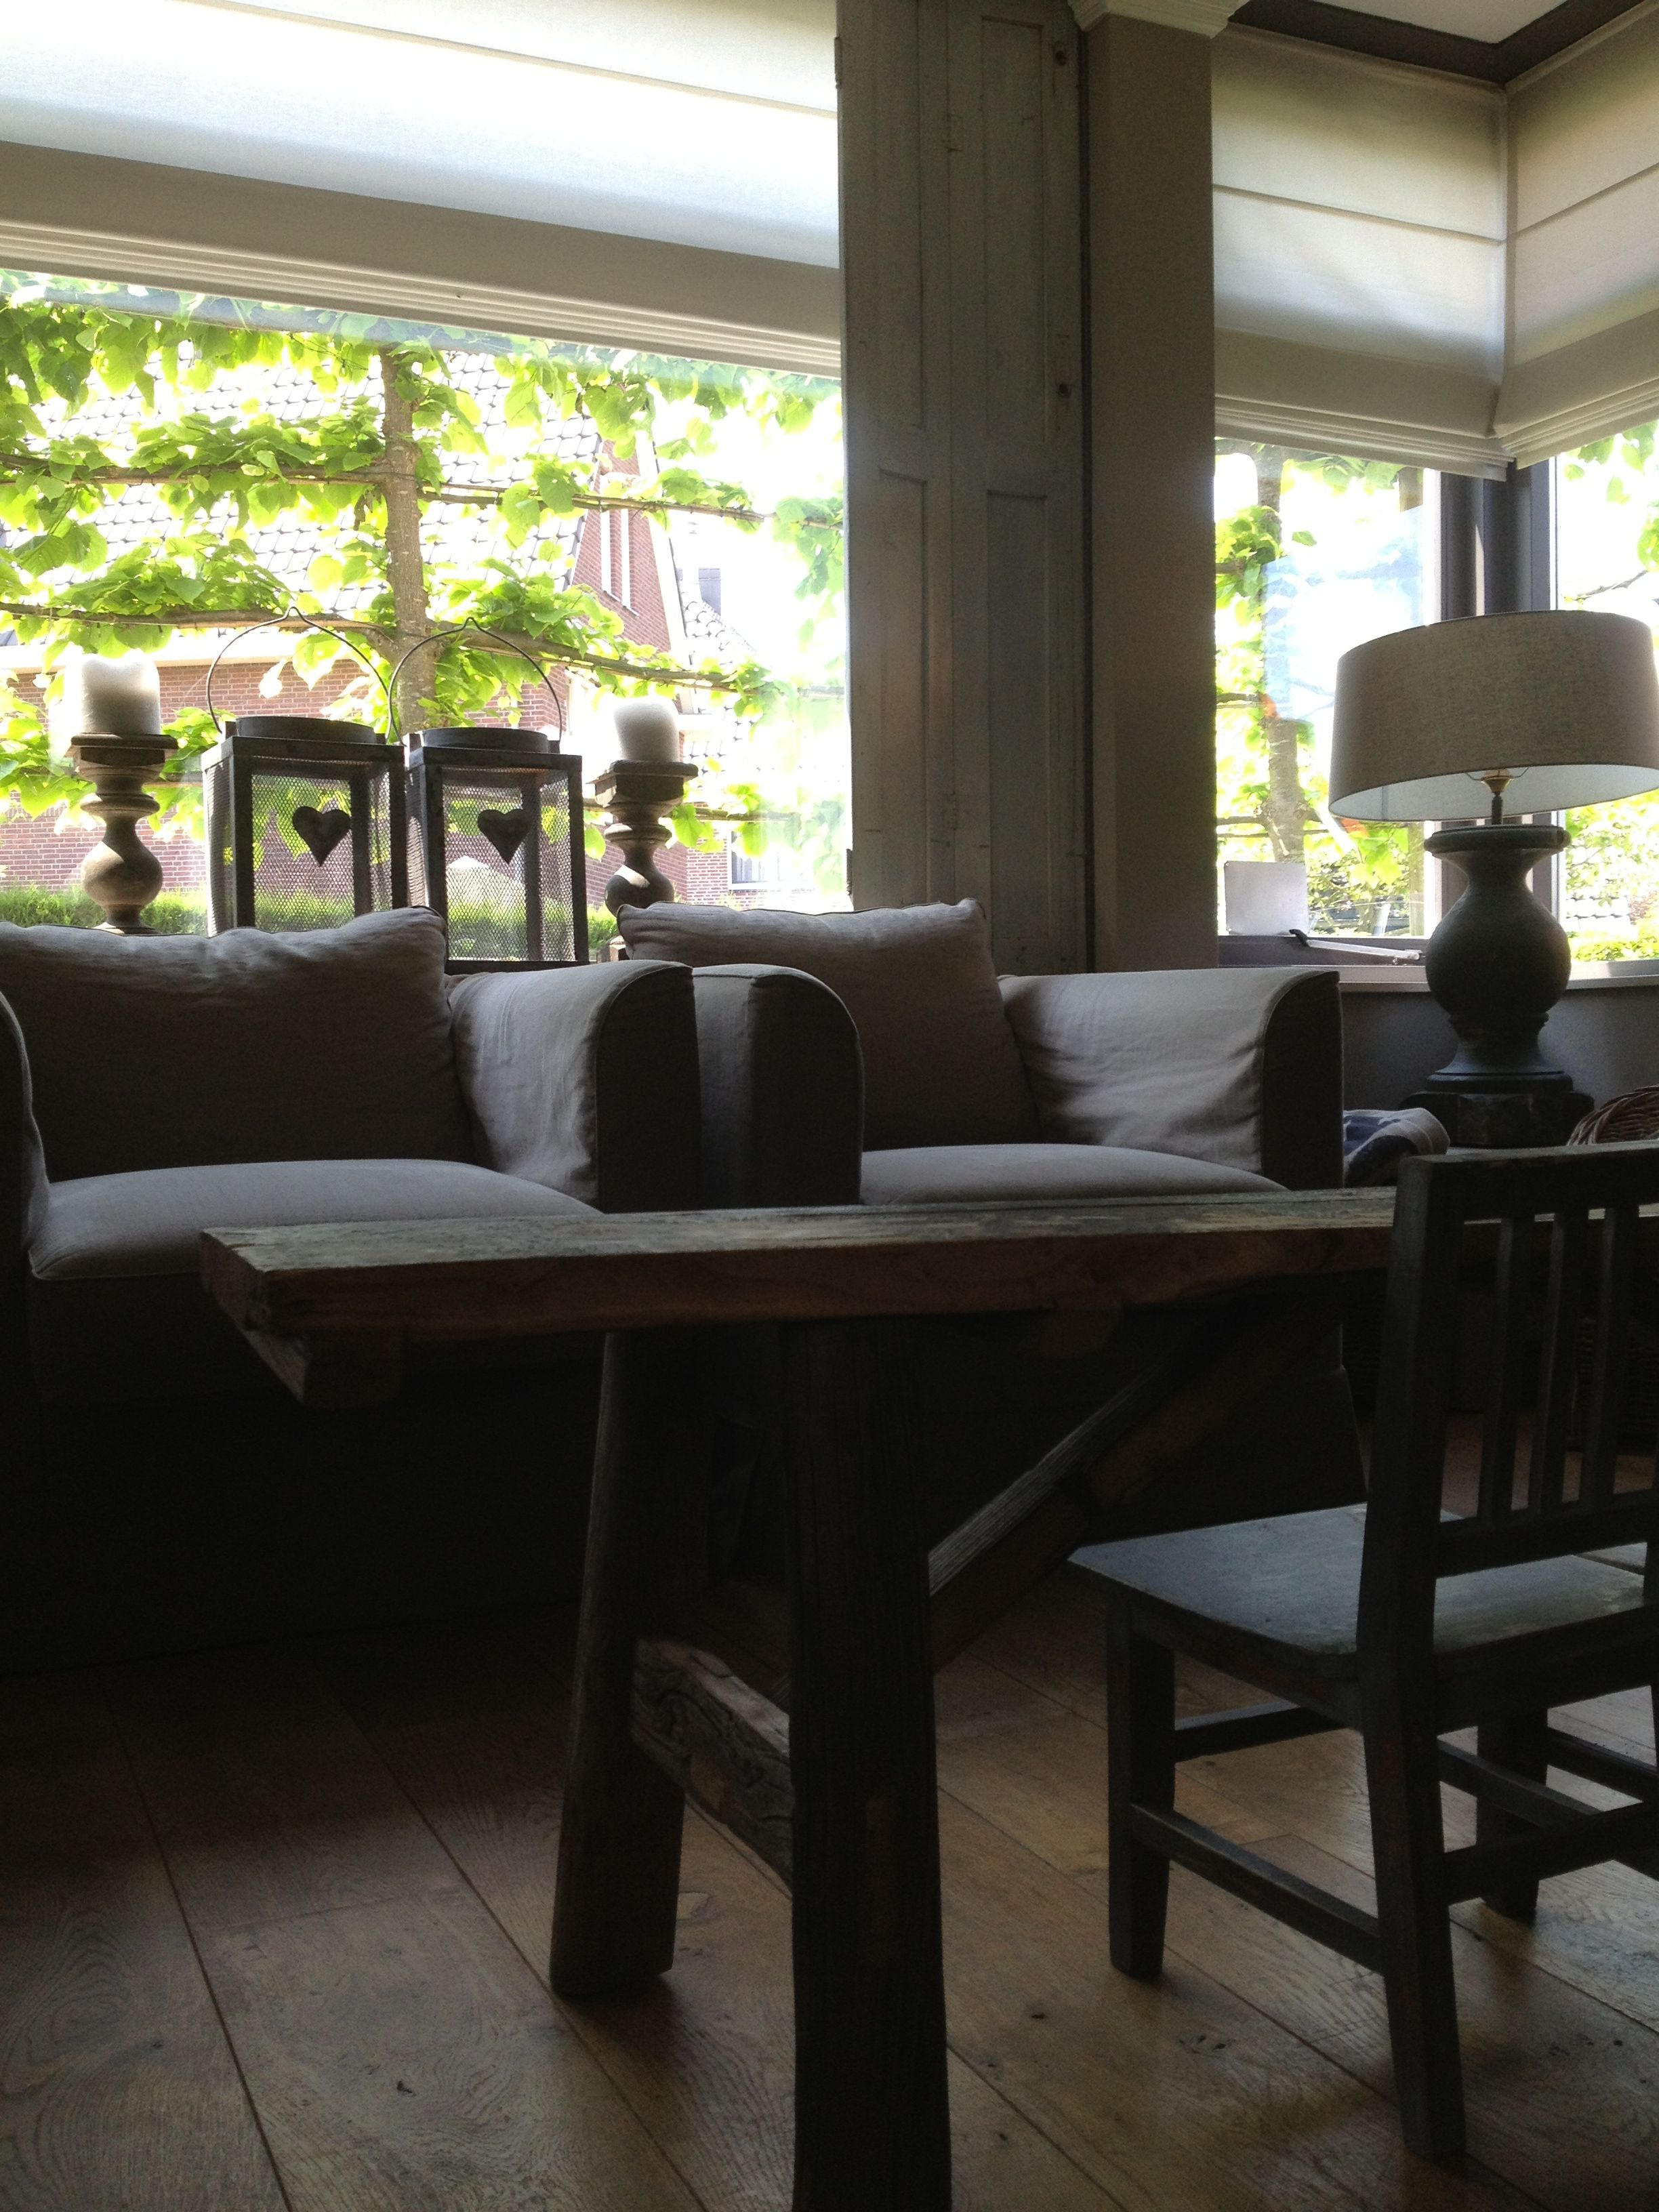 Woonkamer mi casa pinterest belgian style and interiors for Woonkamer style